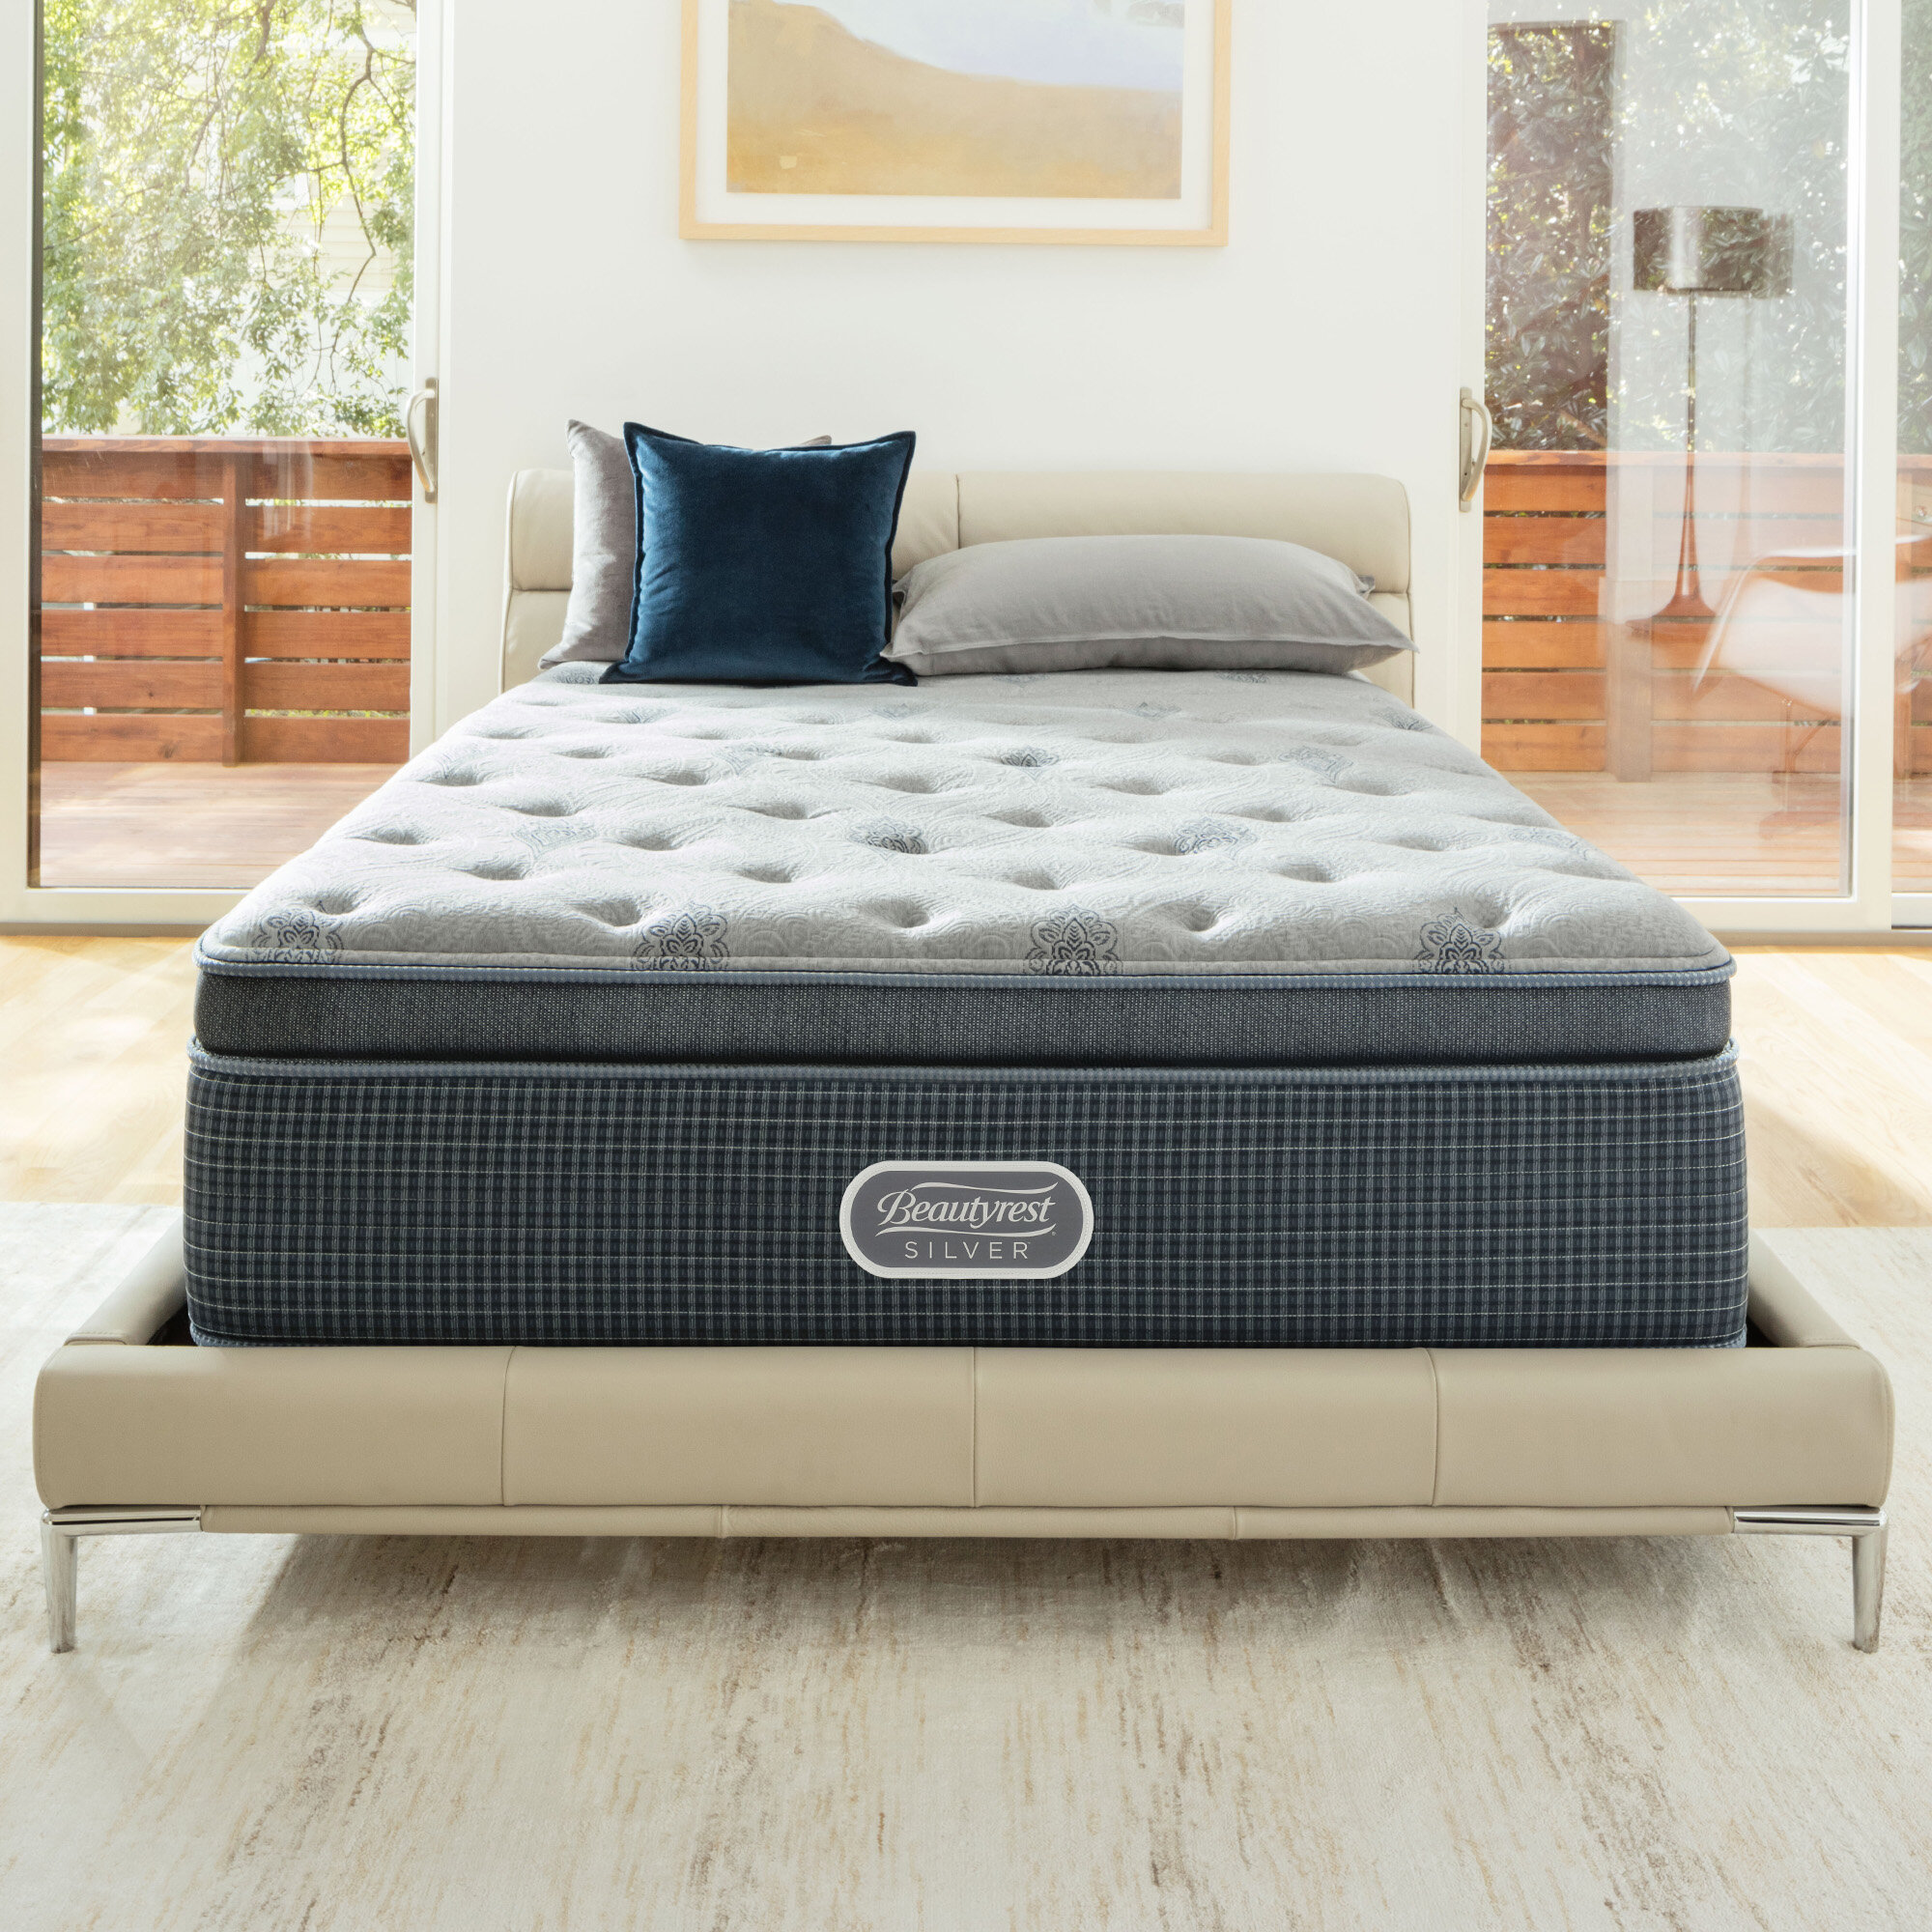 at double superb top rsp hypnos johnlewis buyhypnos main topper online pdp firm pillow mattress pocket com spring